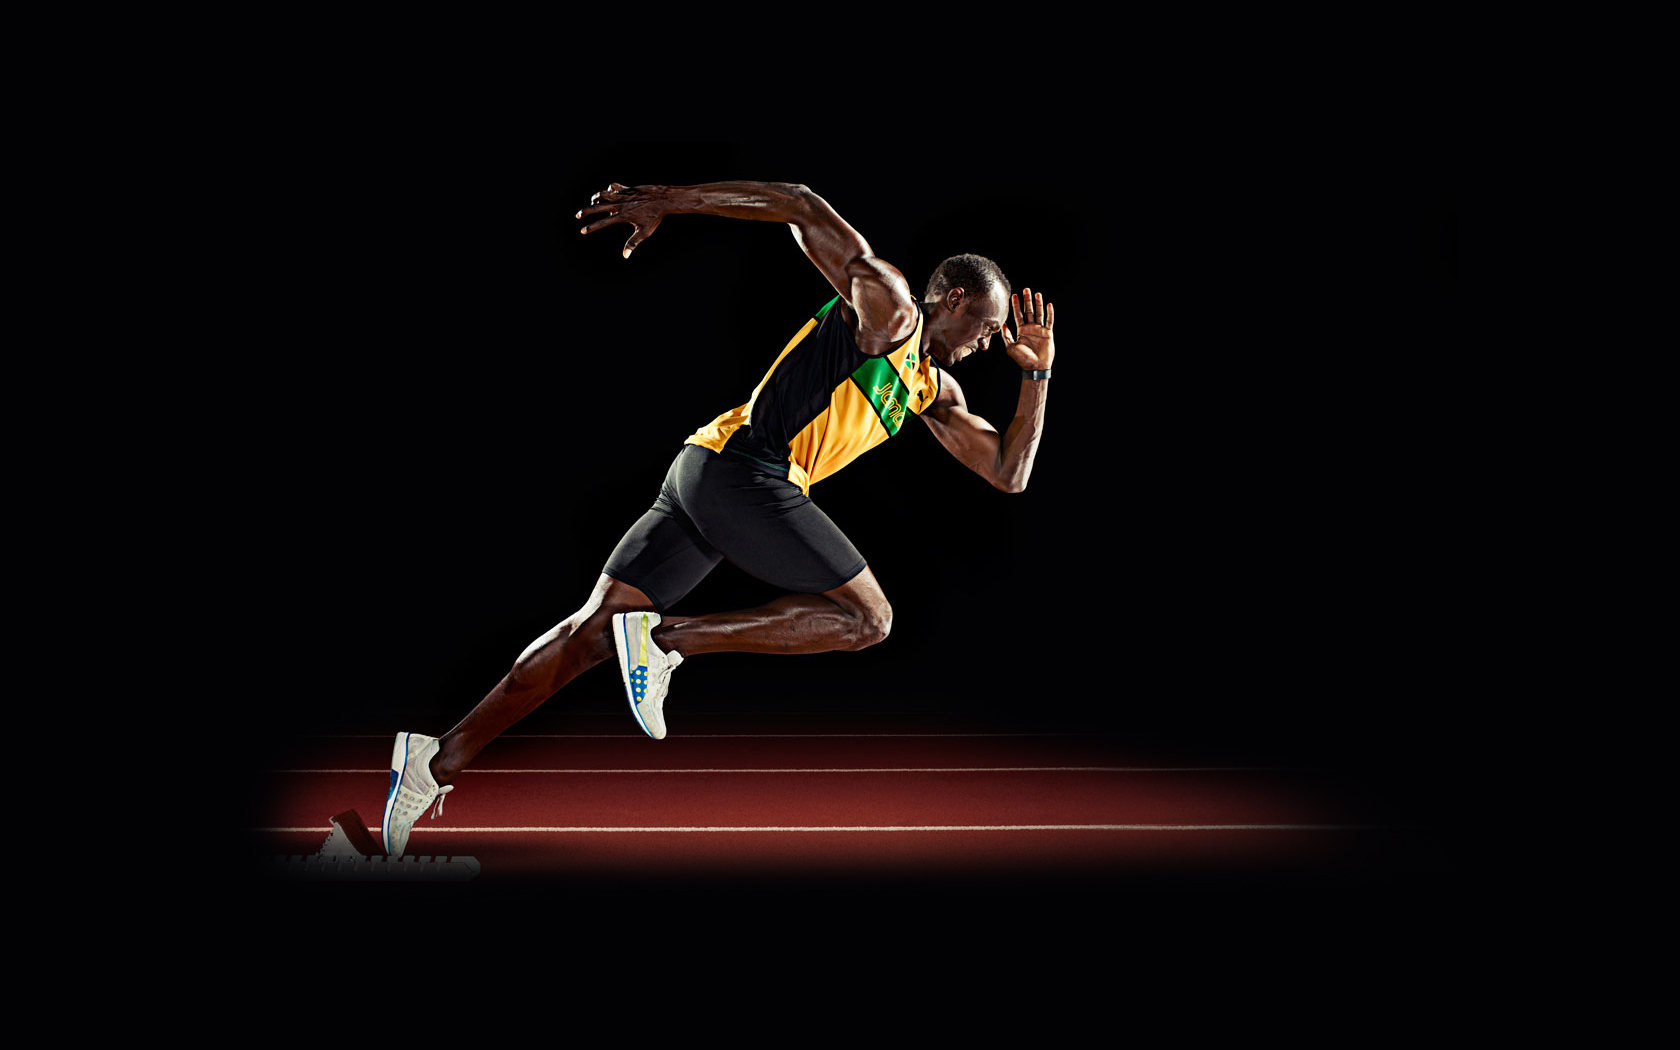 usain bolt new hd wallpapers for desktop free sports images